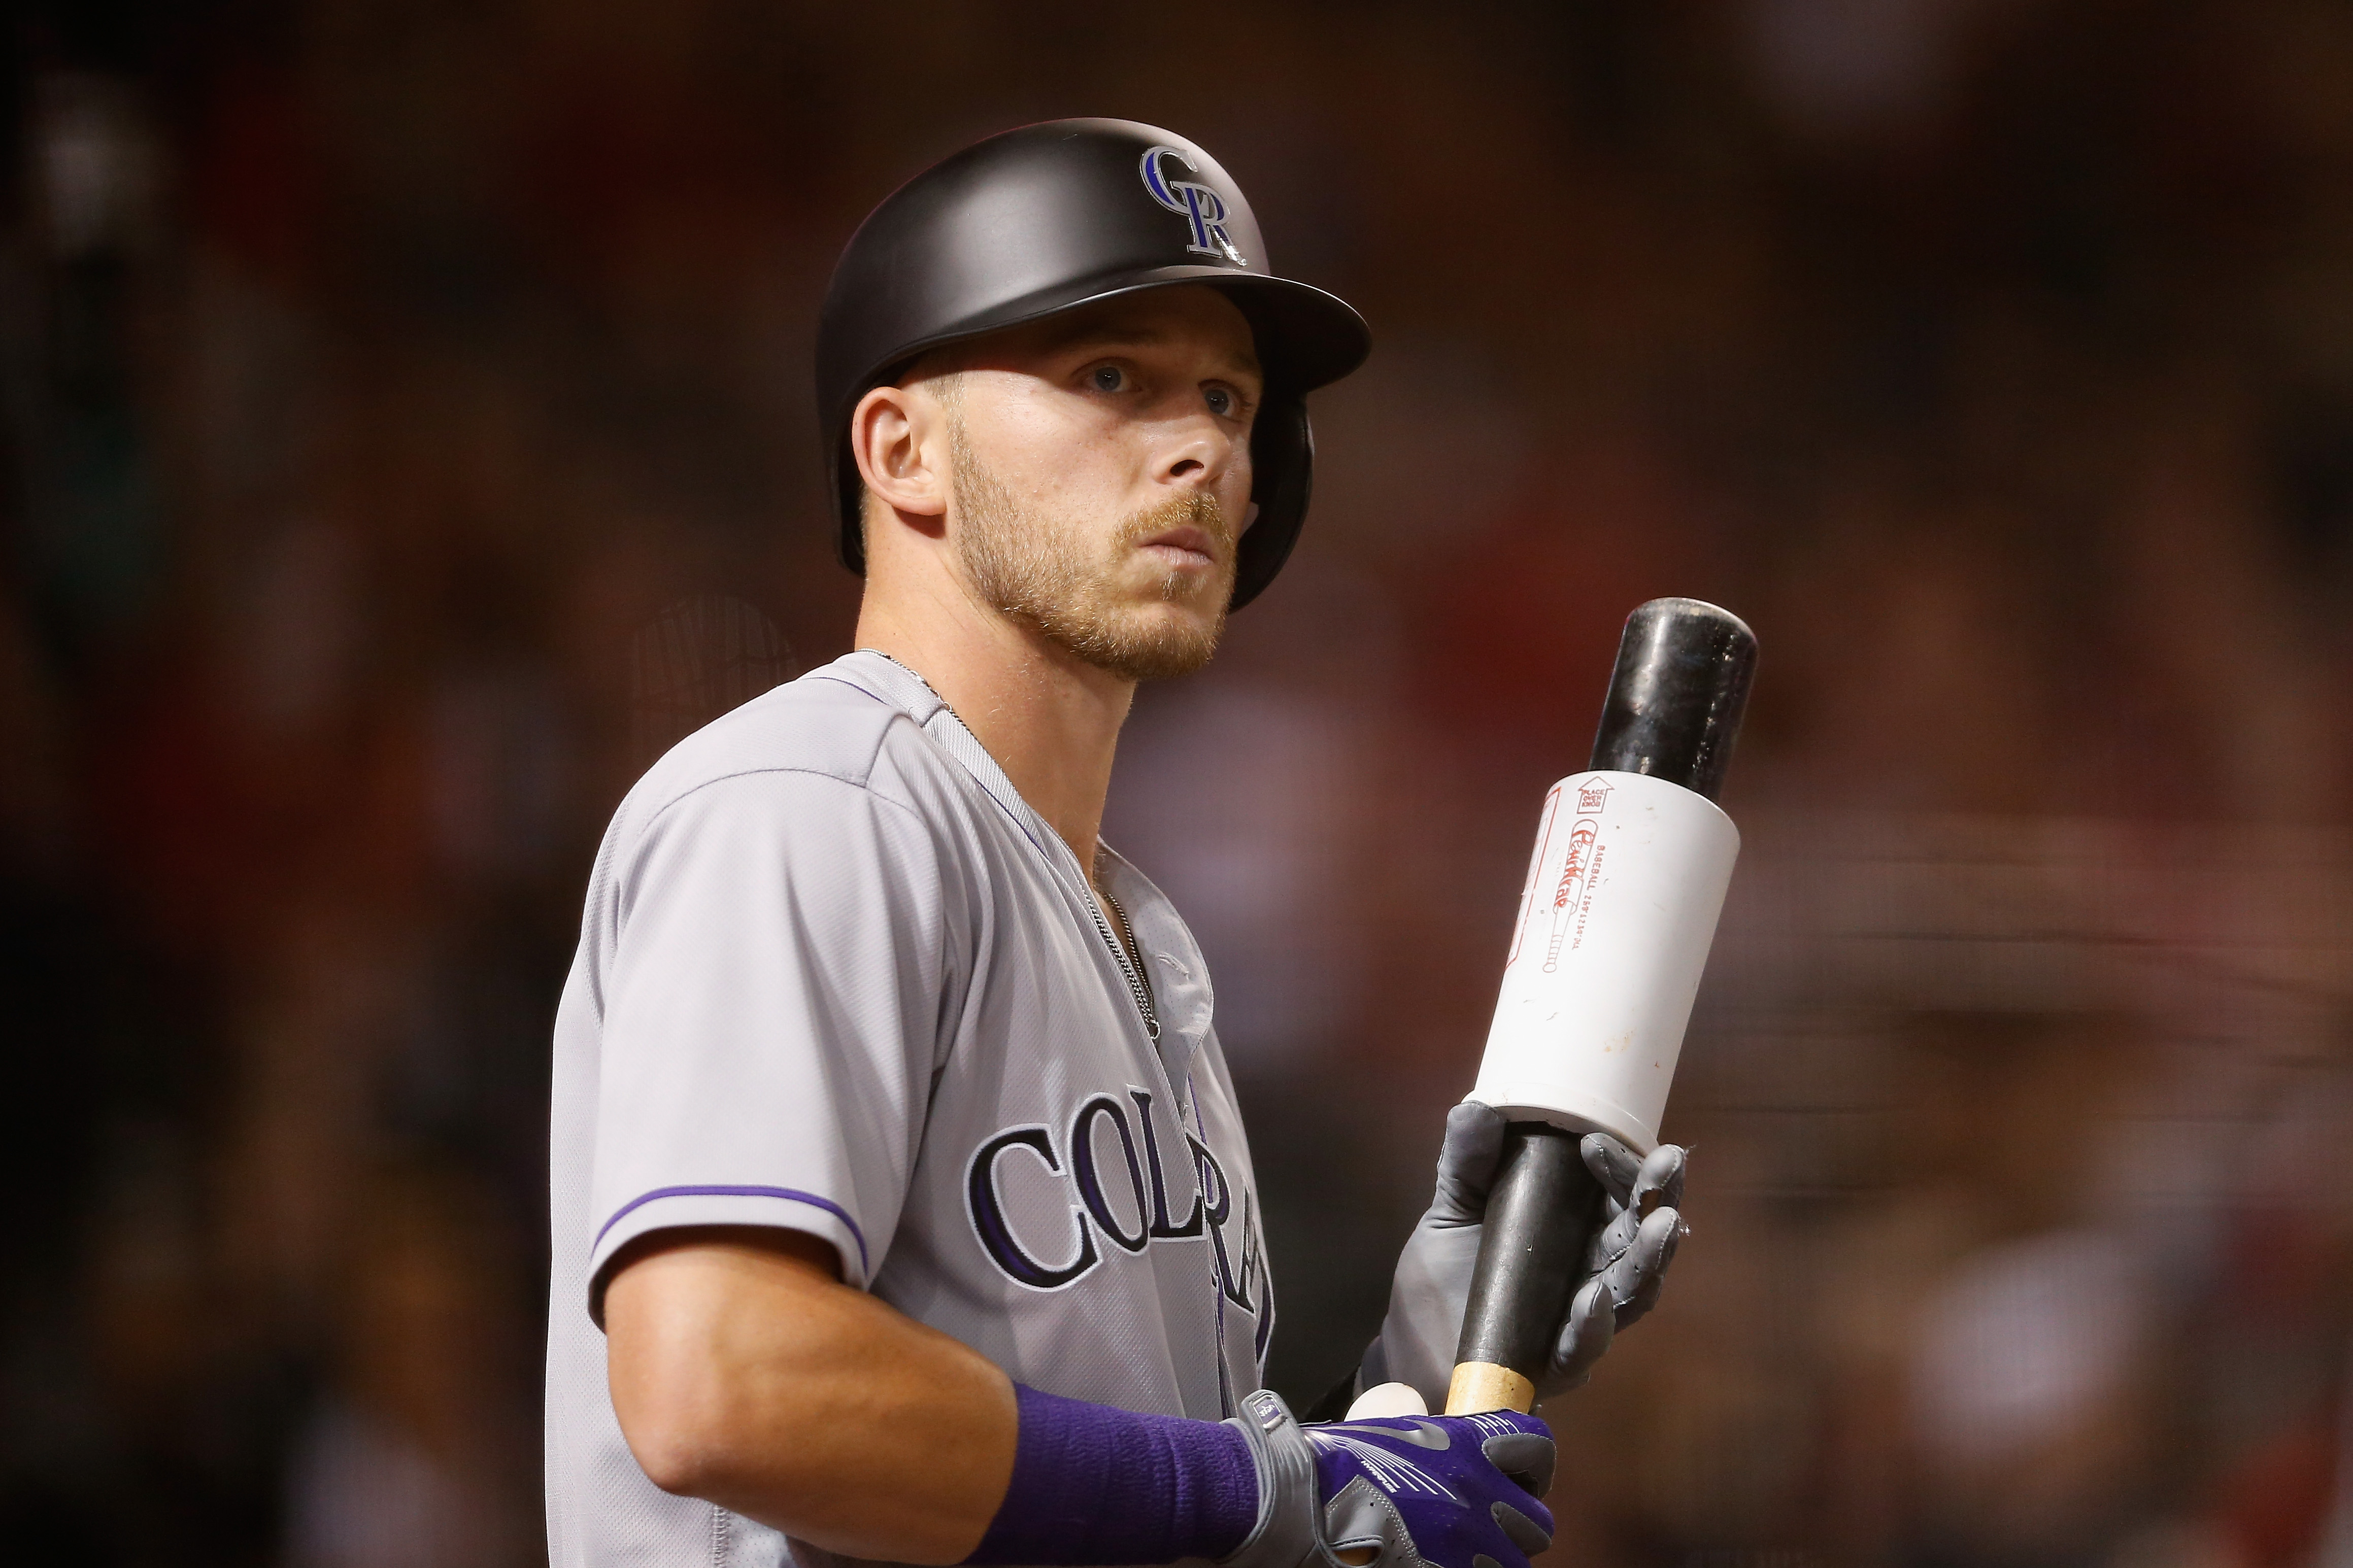 trevor story makes it to the of fame after just three